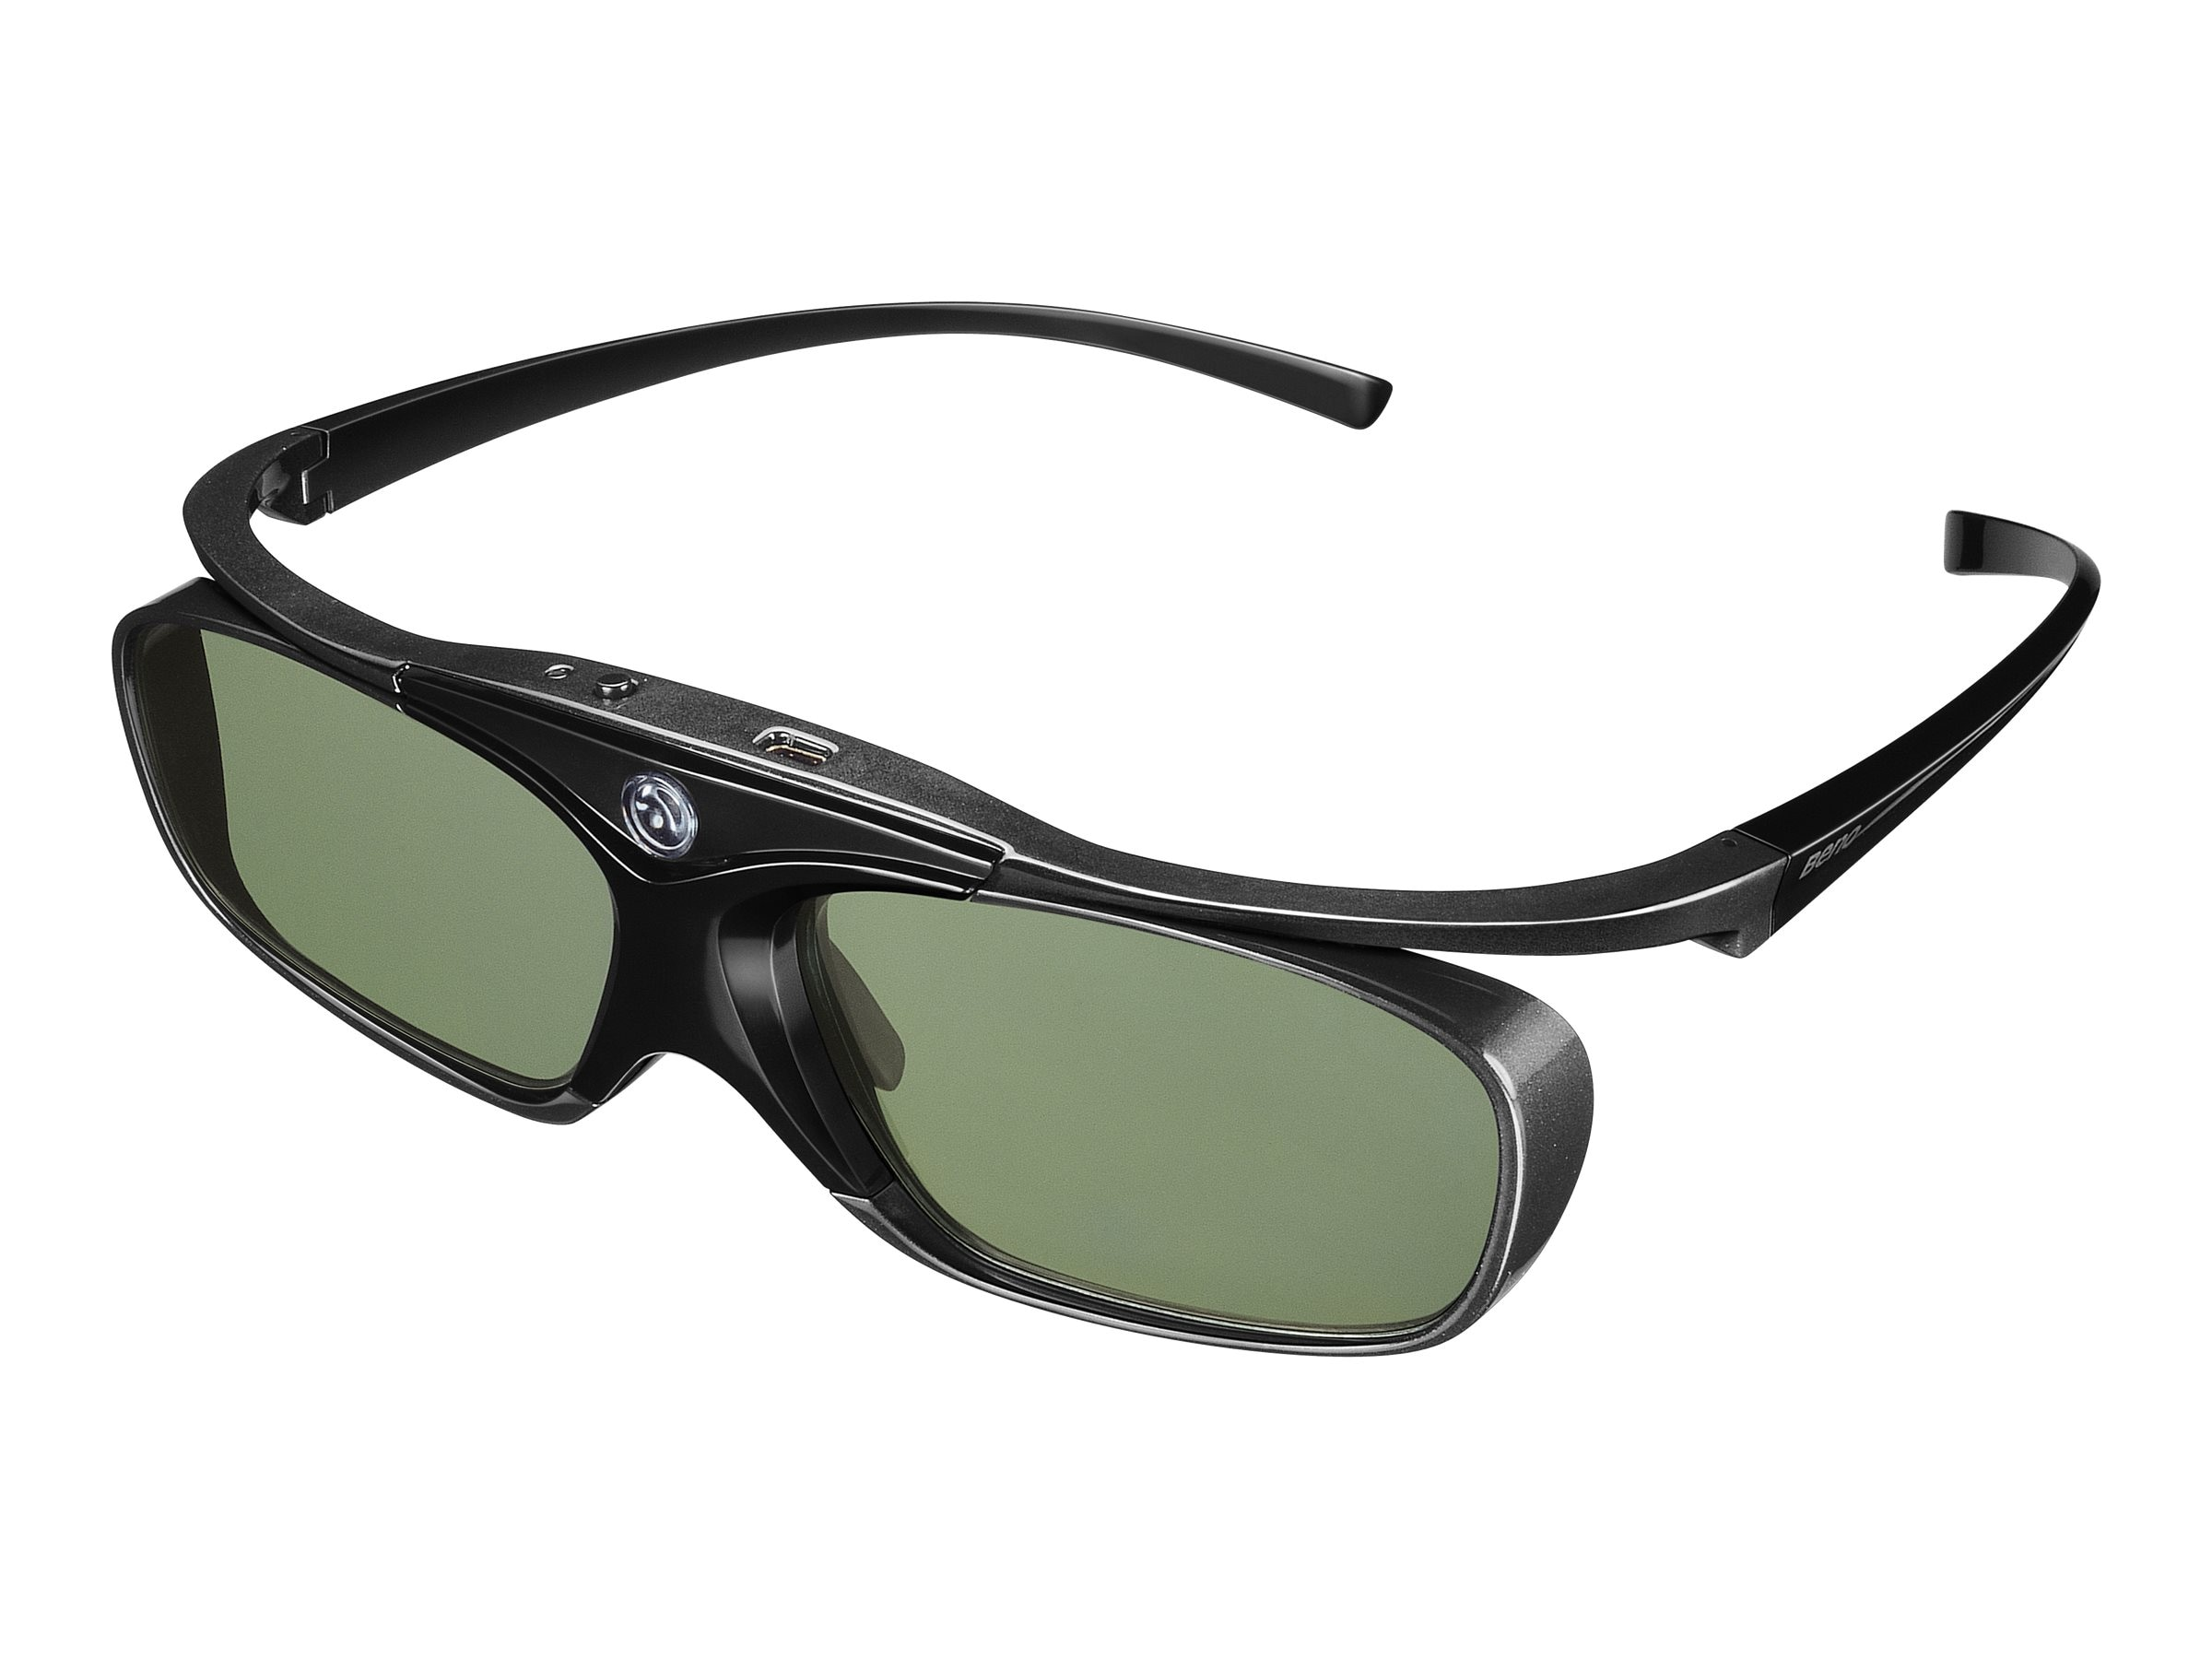 Benq Active 3D Glasses 5TH Generation with DLP Link, 5J.J9H25.001, 18394811, Projector Accessories